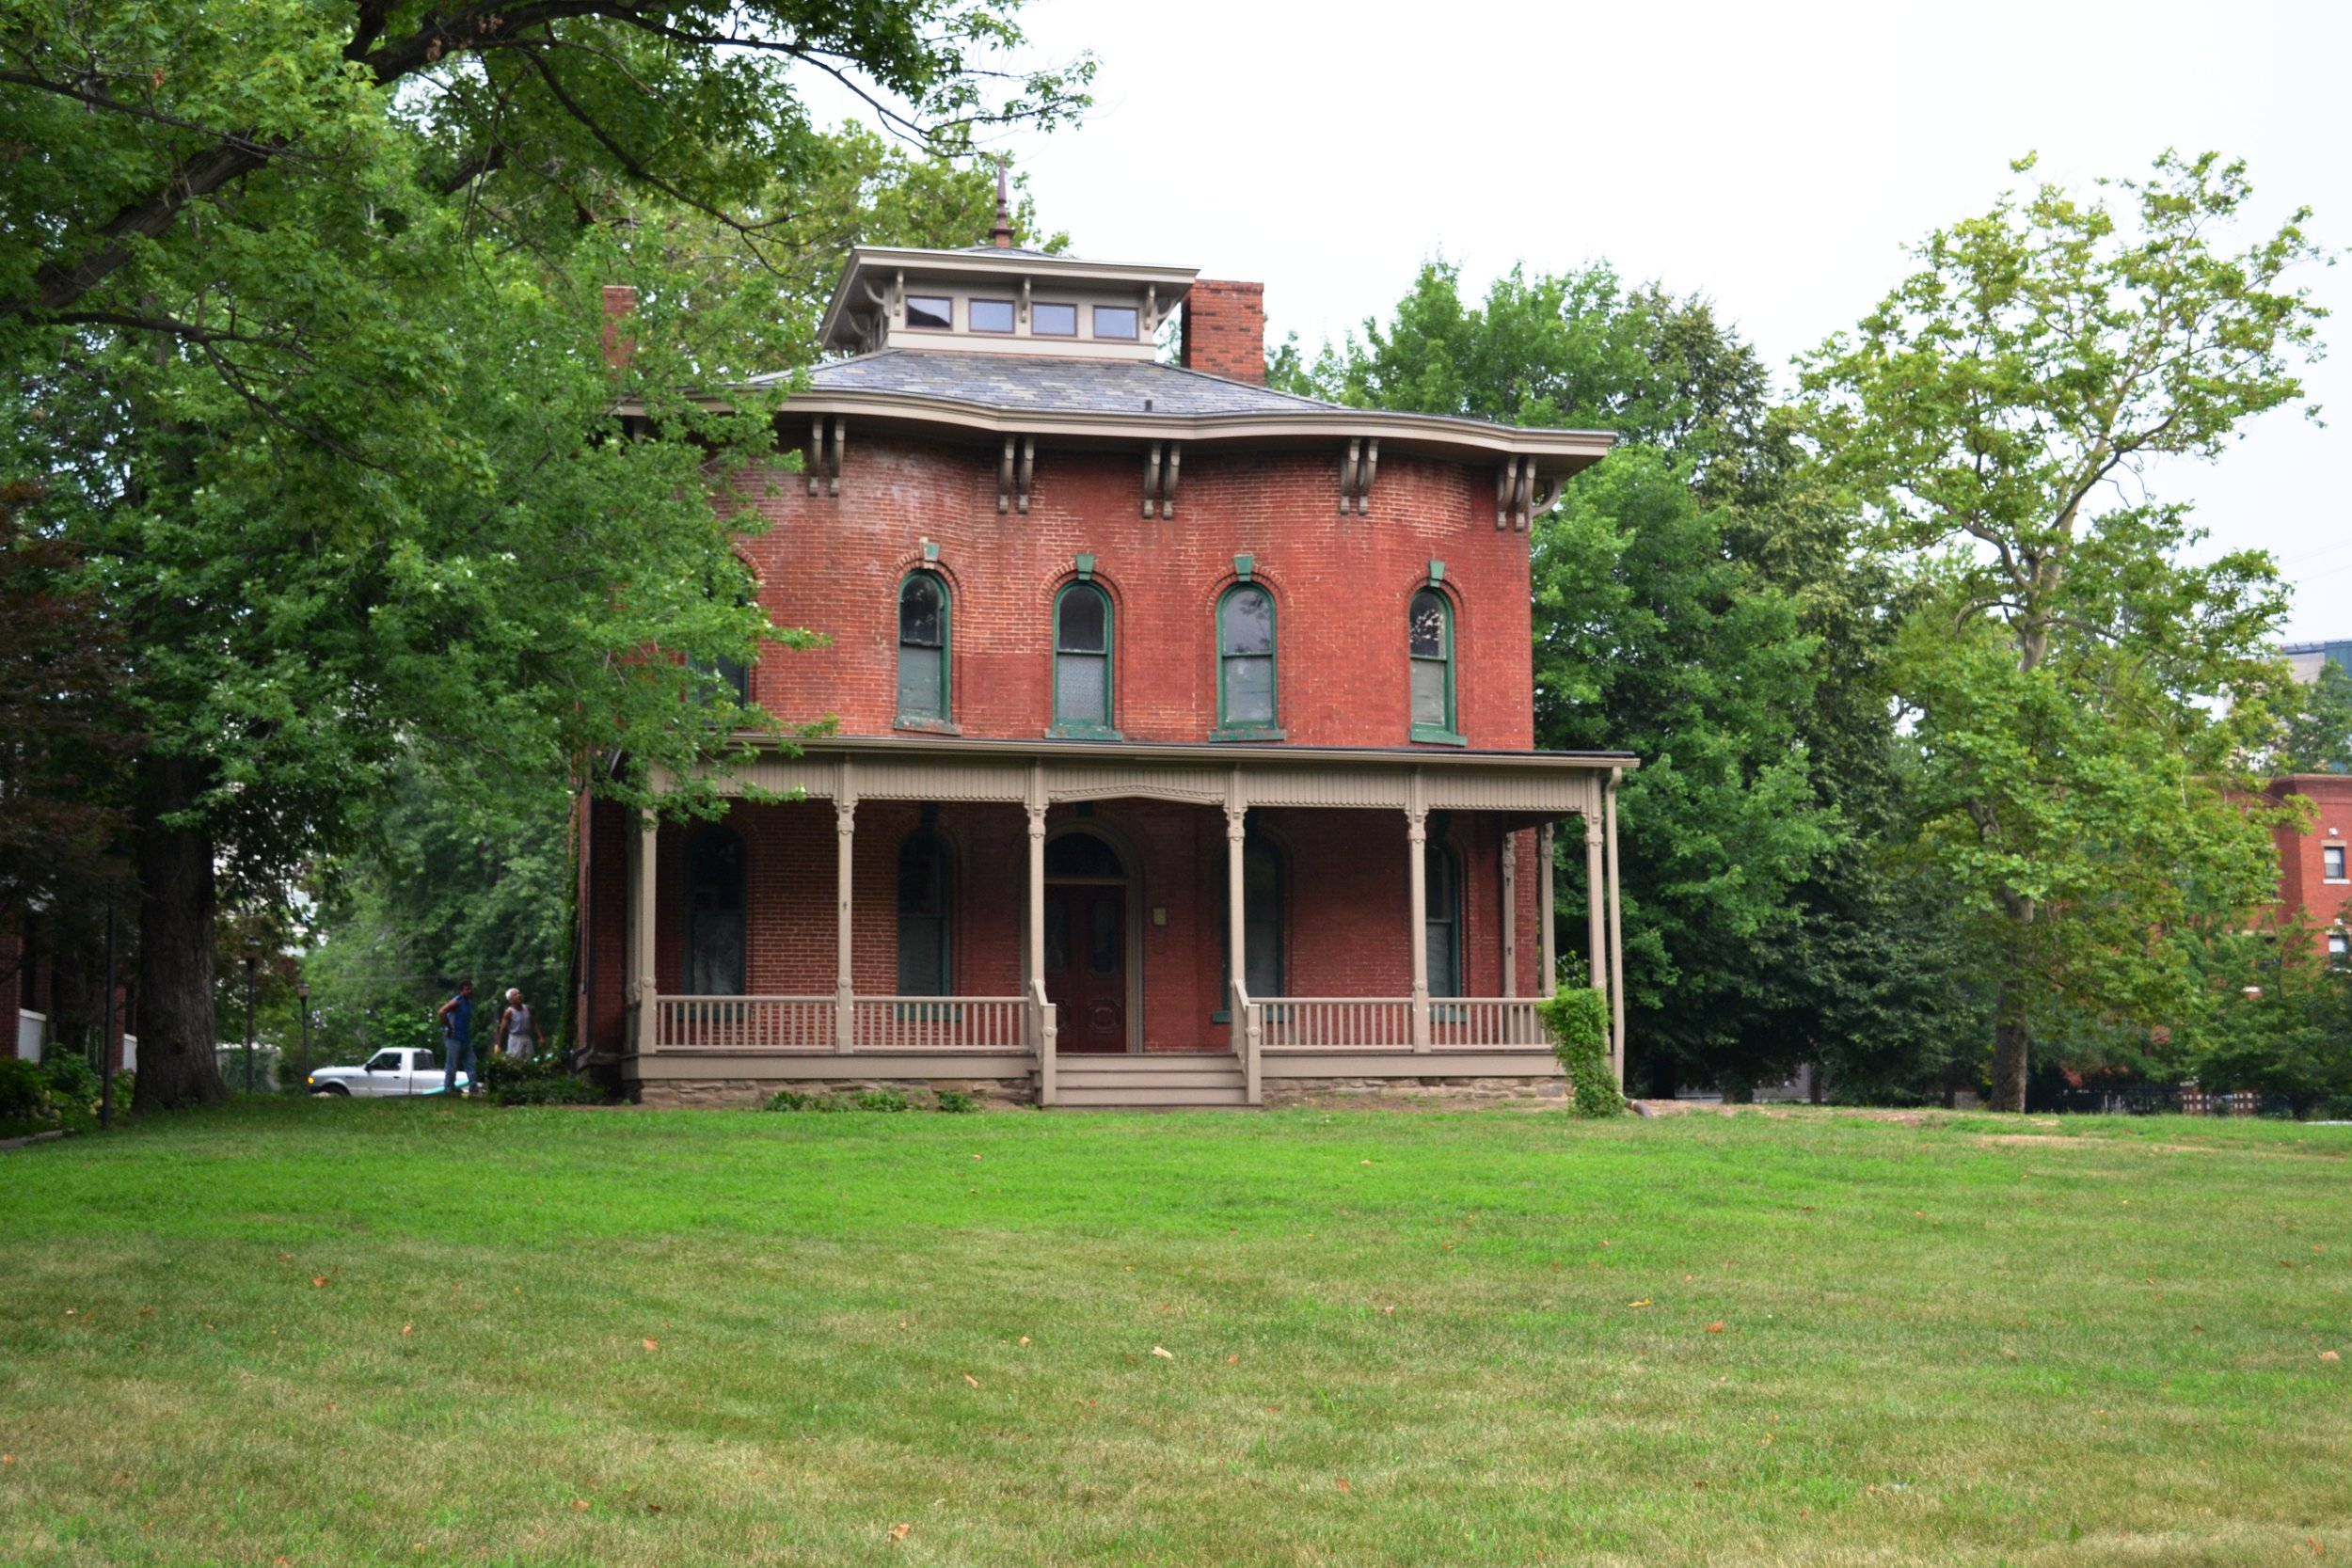 Cozad-Bates House, a Cleveland stop on the Underground Railroad.